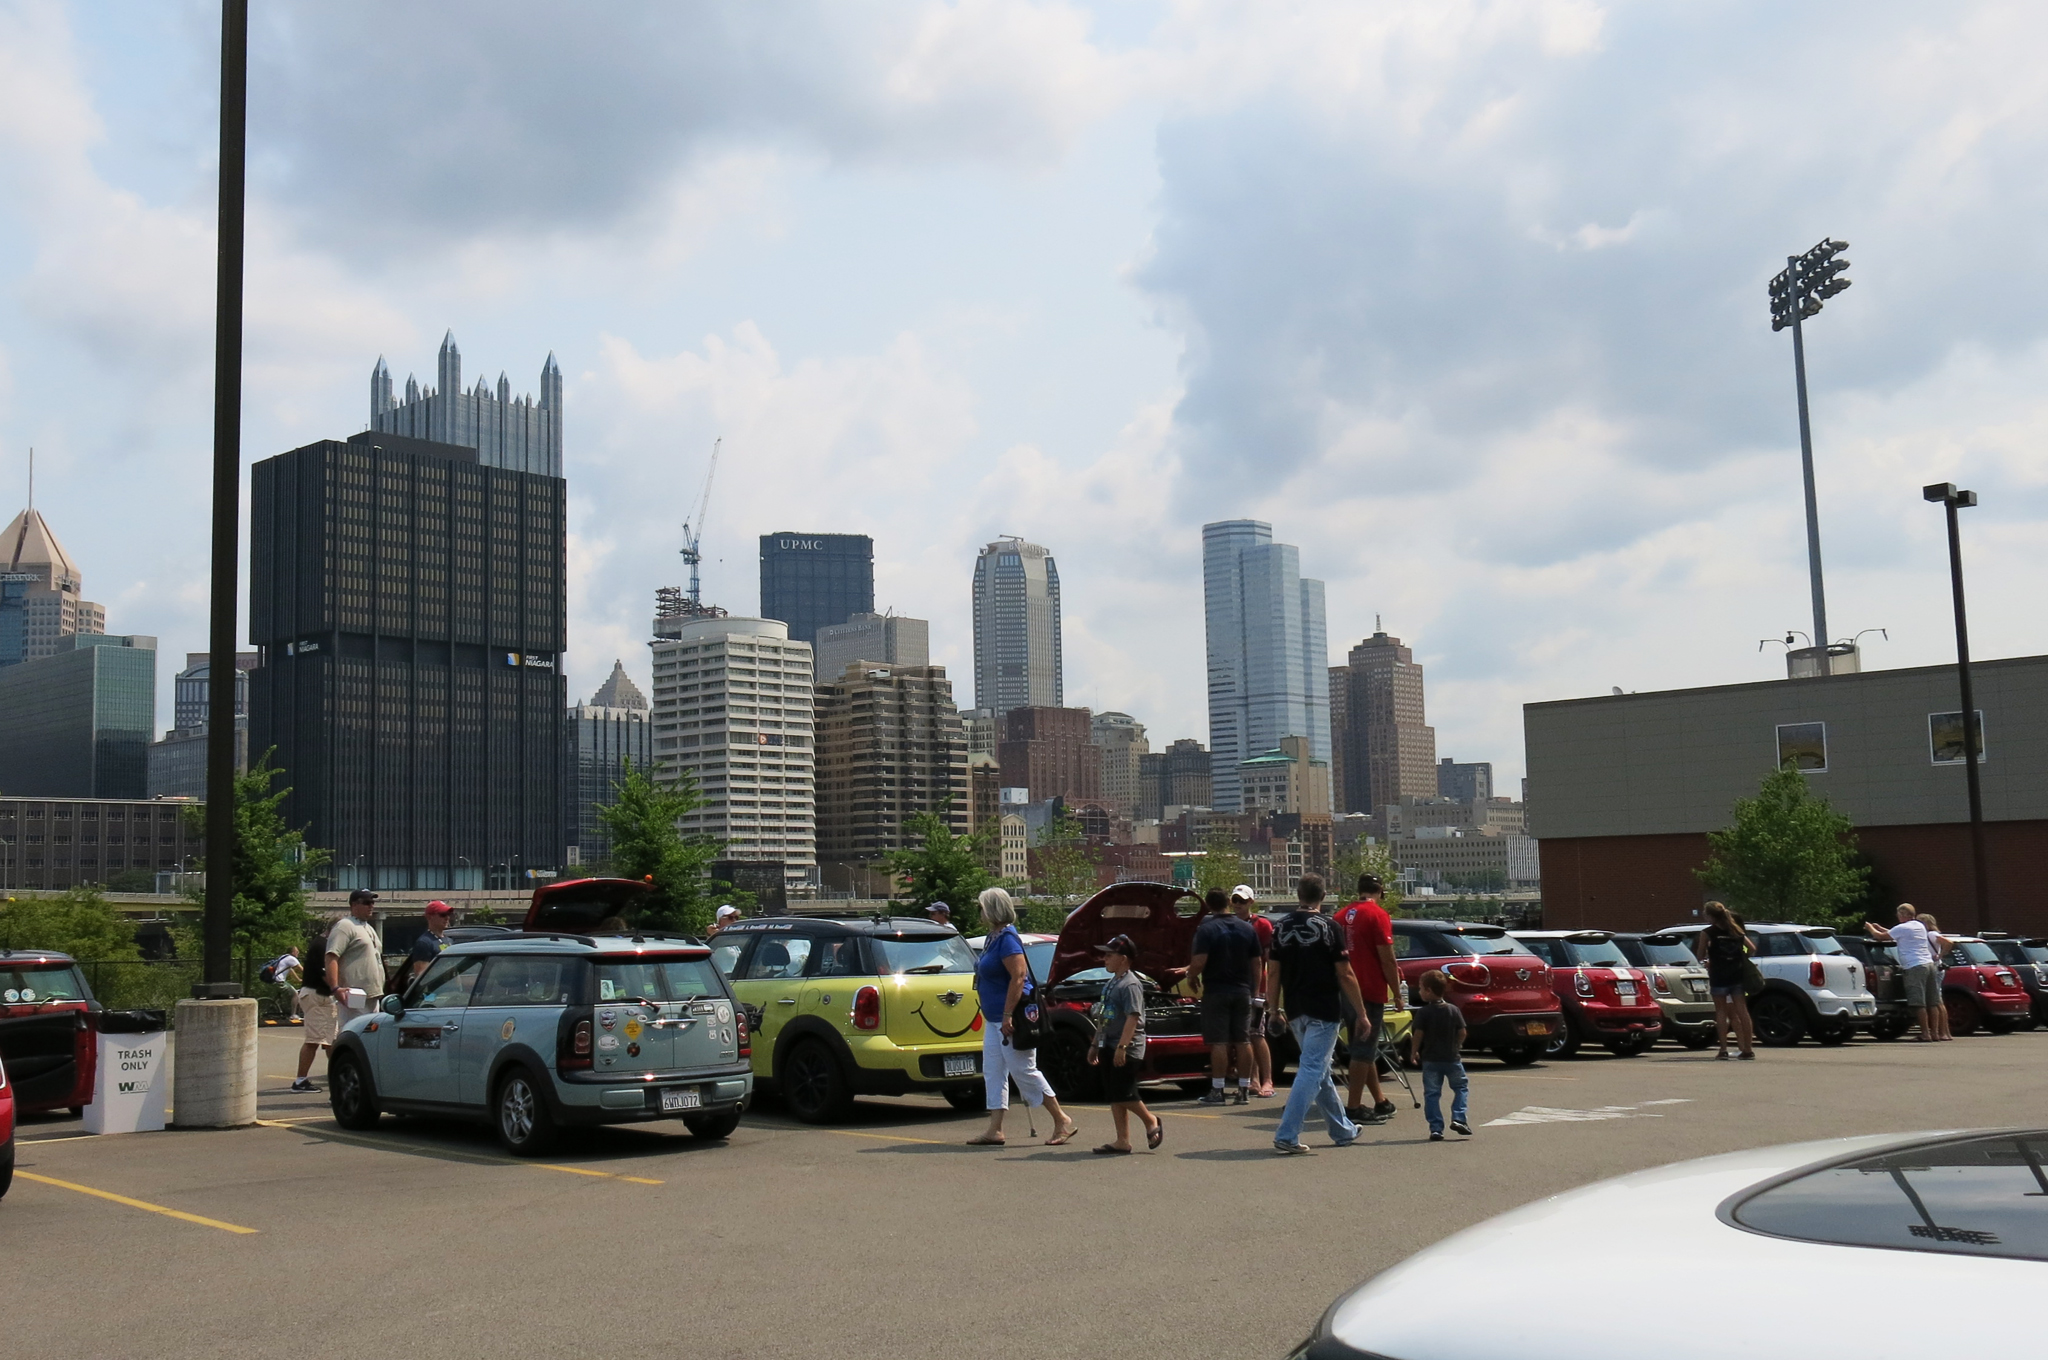 Pit stop in Pittsburgh, PA at the Highmark Stadium, home of the Riverhounds soccer team.